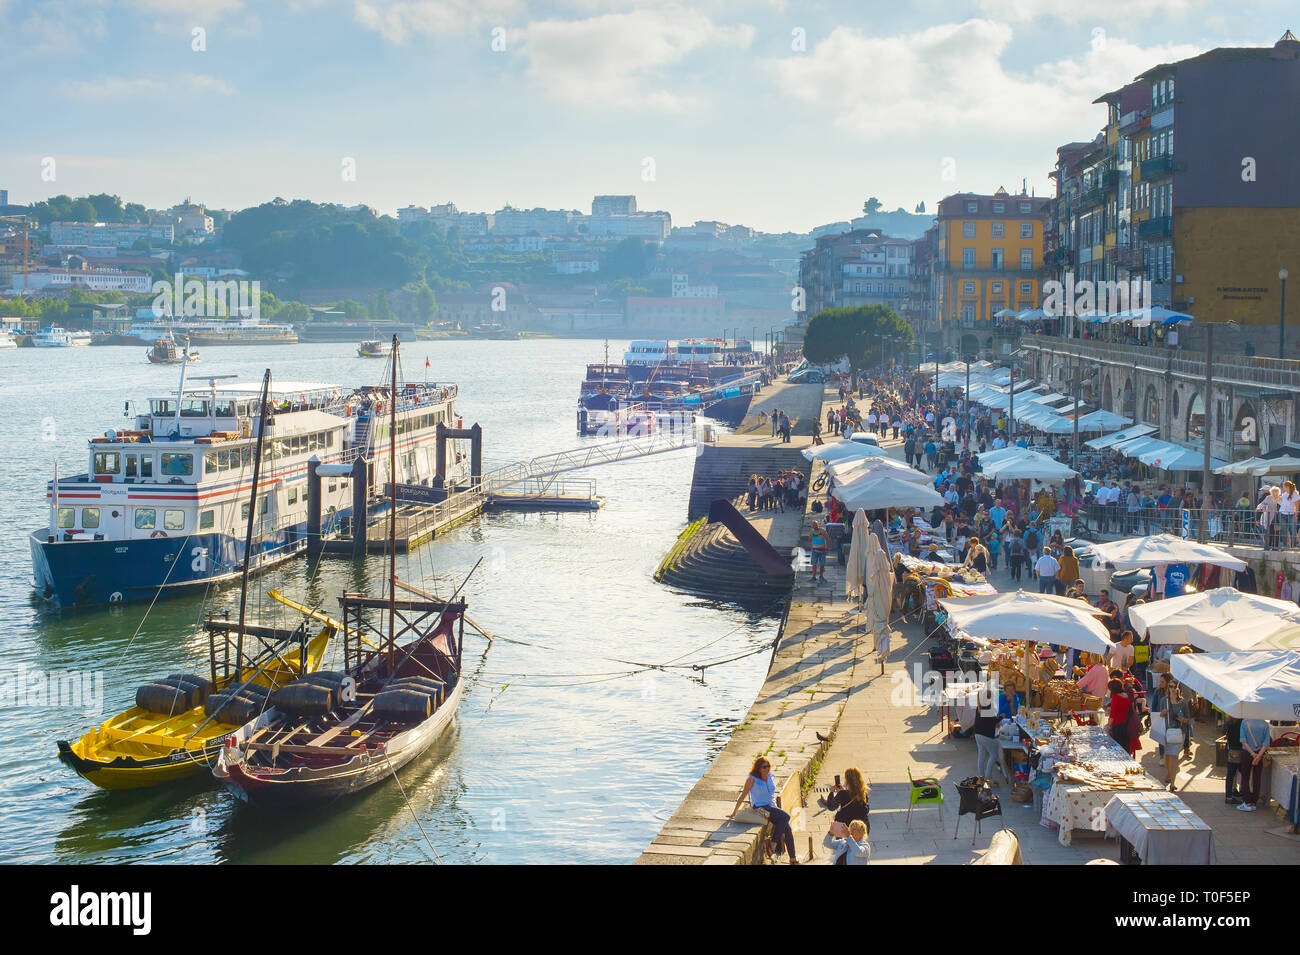 PORTO, PORTUGAL - JUNE 2, 2017: Cityscape with Porto Old Town quay, outdoor restaurants, souvenir stalls, crowd of tourists and tour boats moored by e - Stock Image